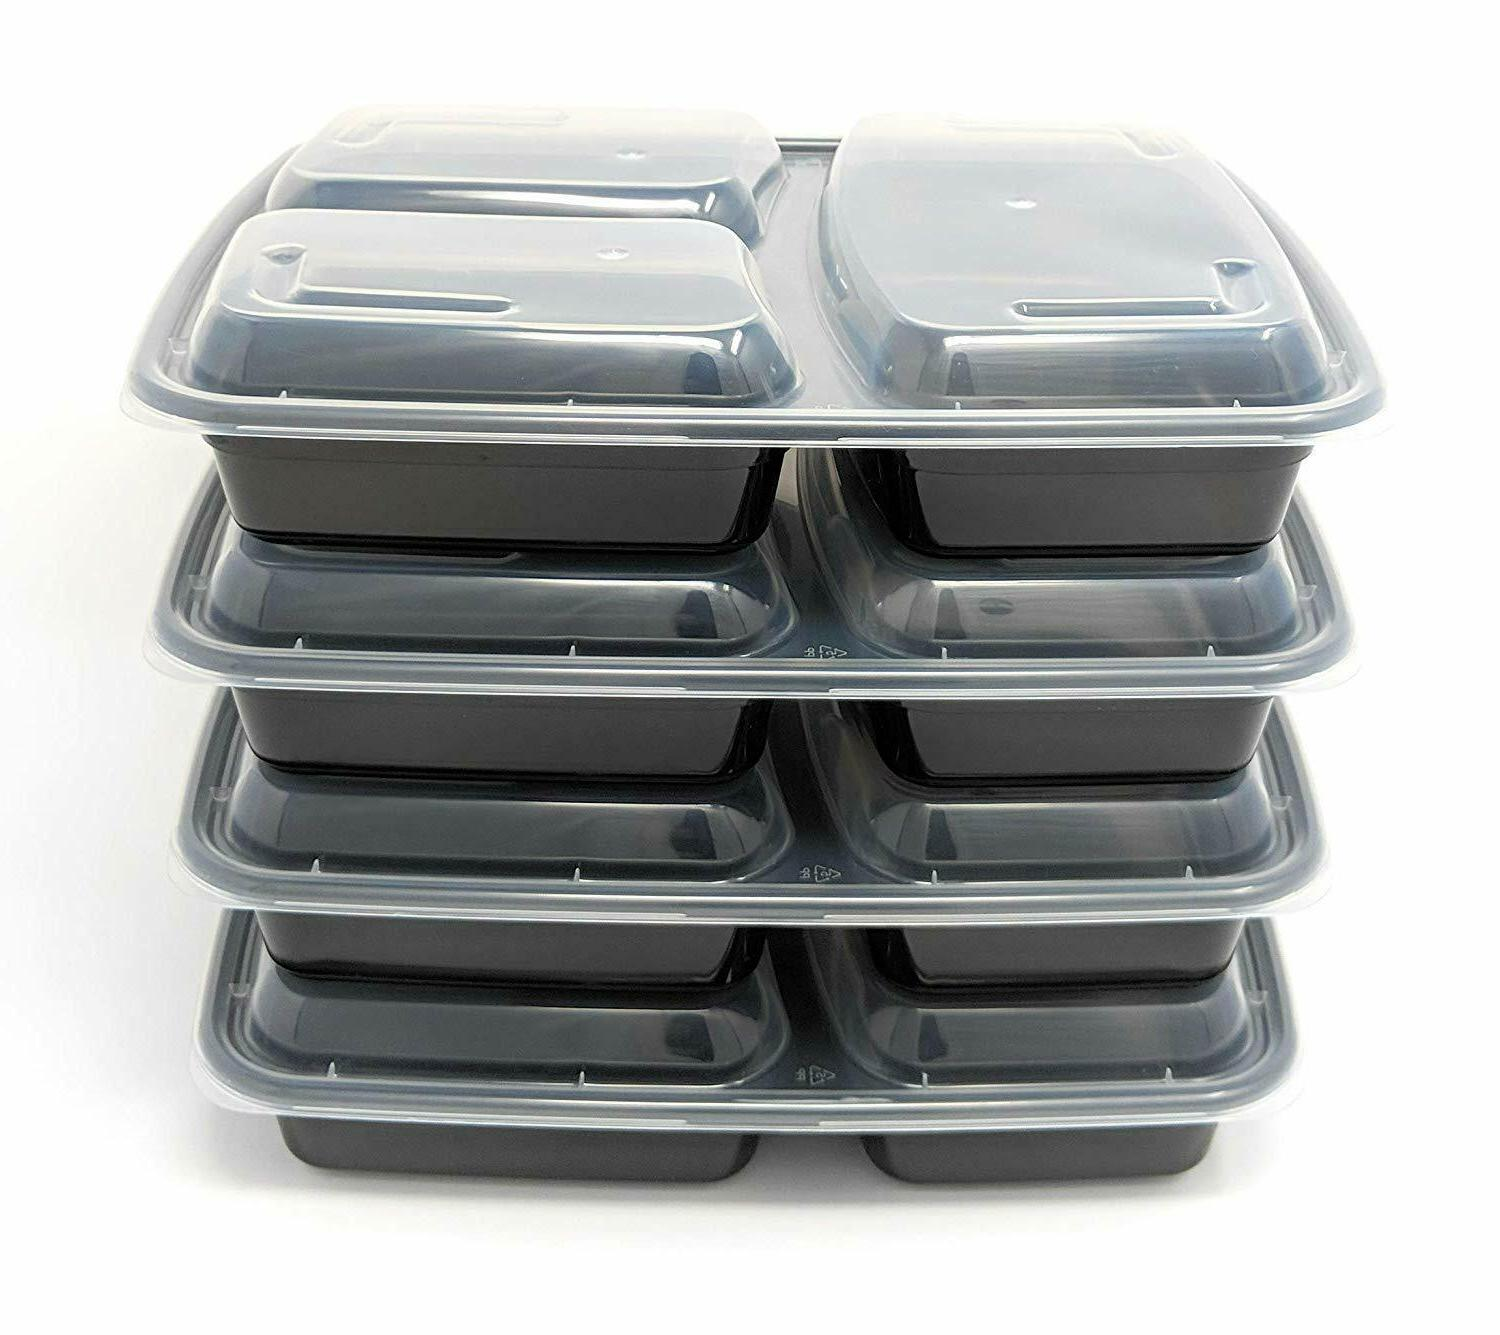 MEAL CONTAINERS Safe 3 Food